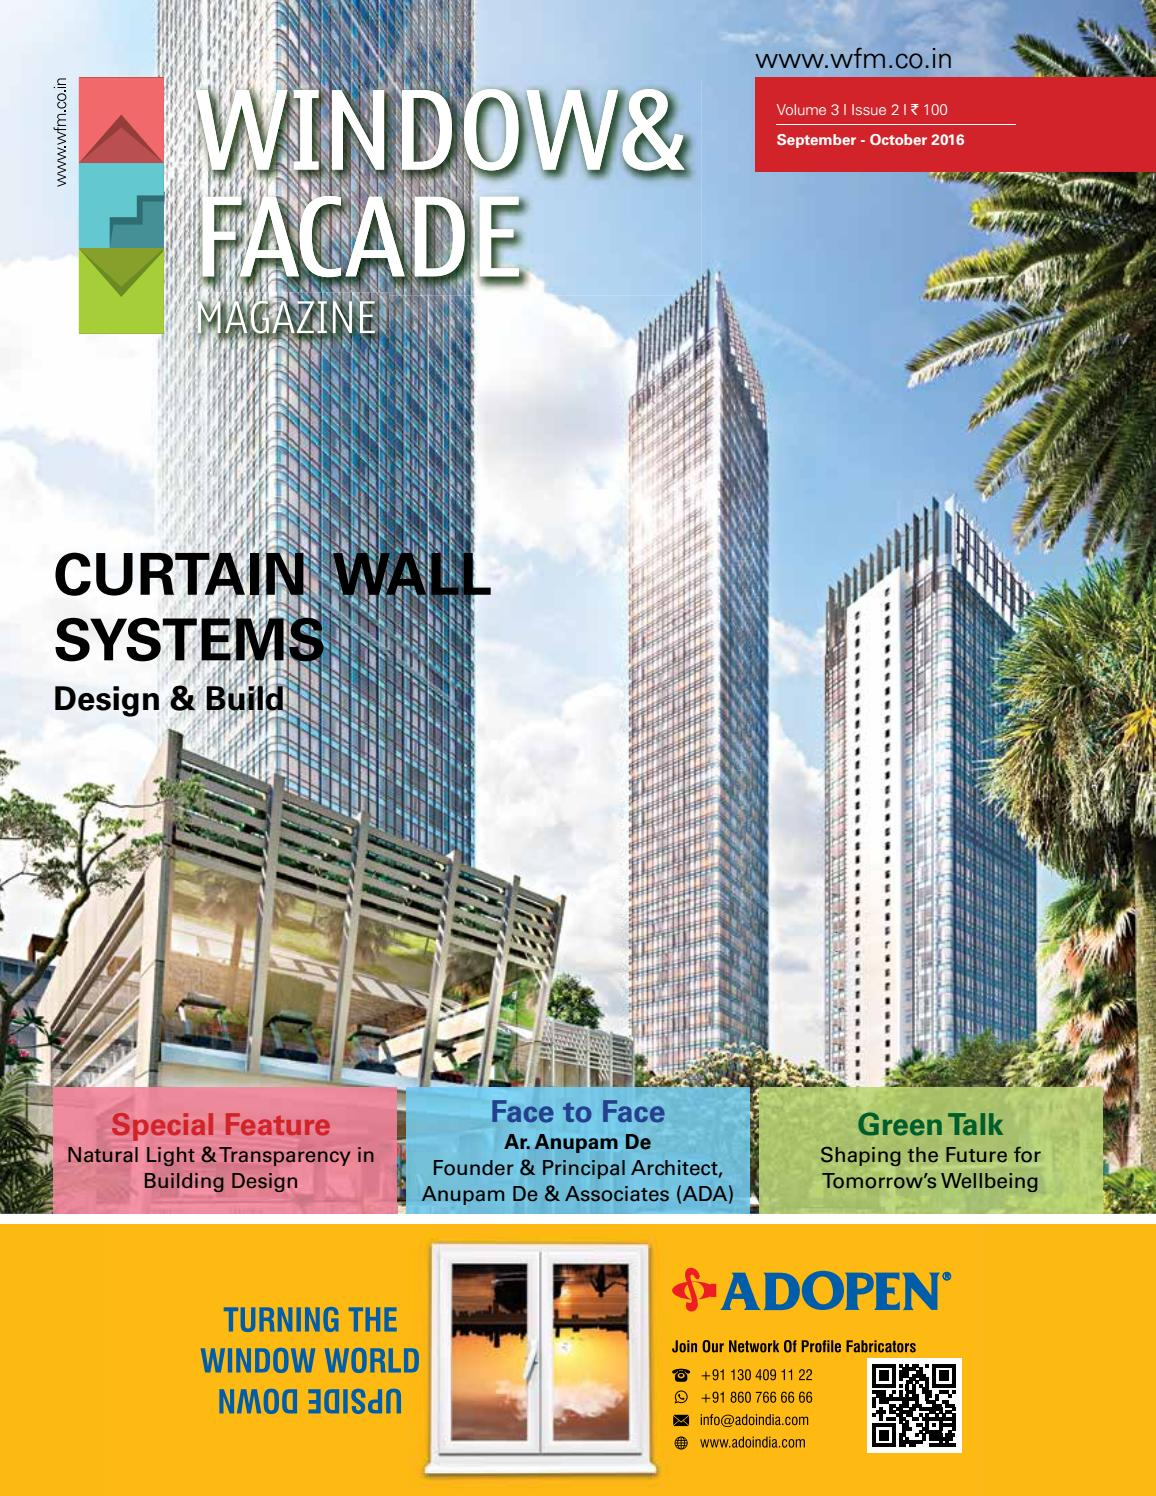 Window Facade Magazine September October 2016 Issue By F Certainty Tape Regular L 10 Free 2 Mitu Travel Pack Media And Publications Issuu